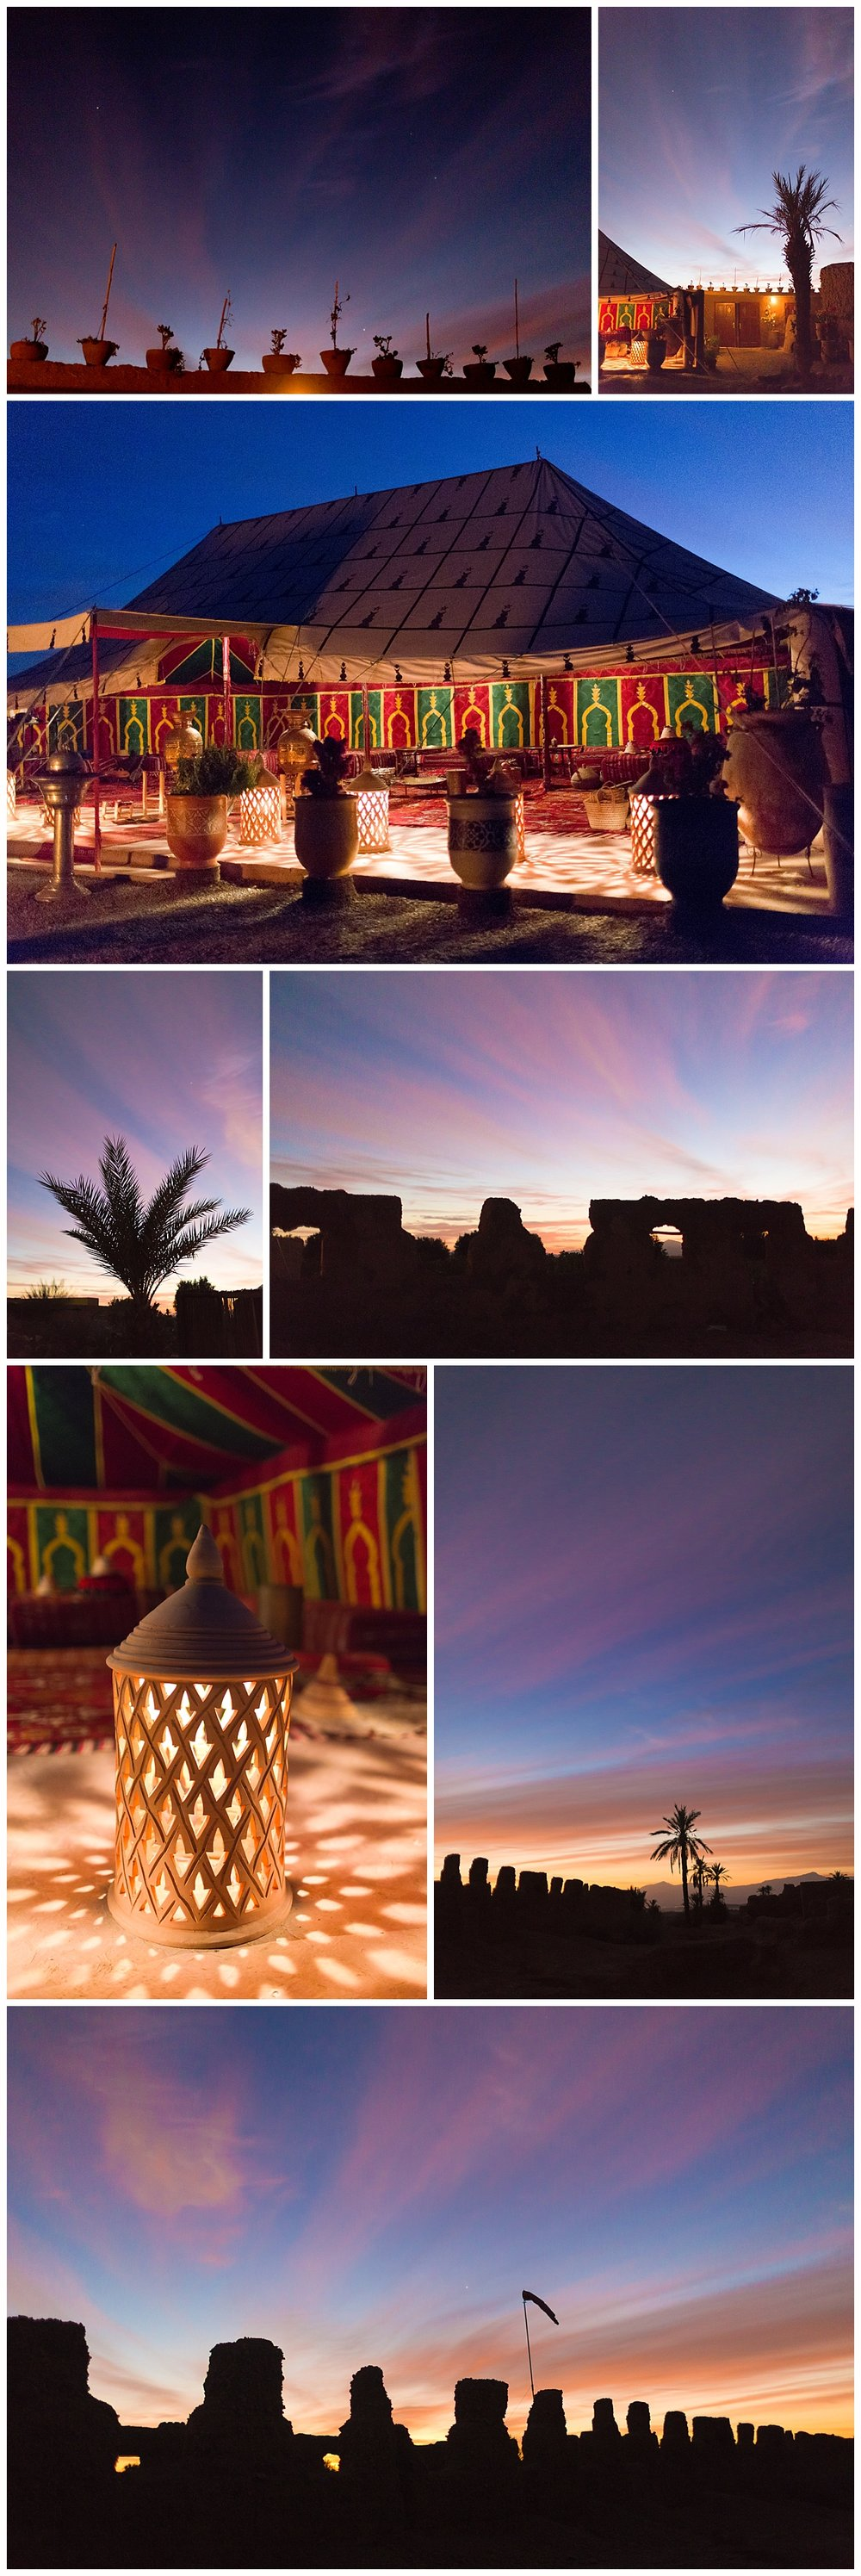 sunrise in the Sahara desert of Morocco